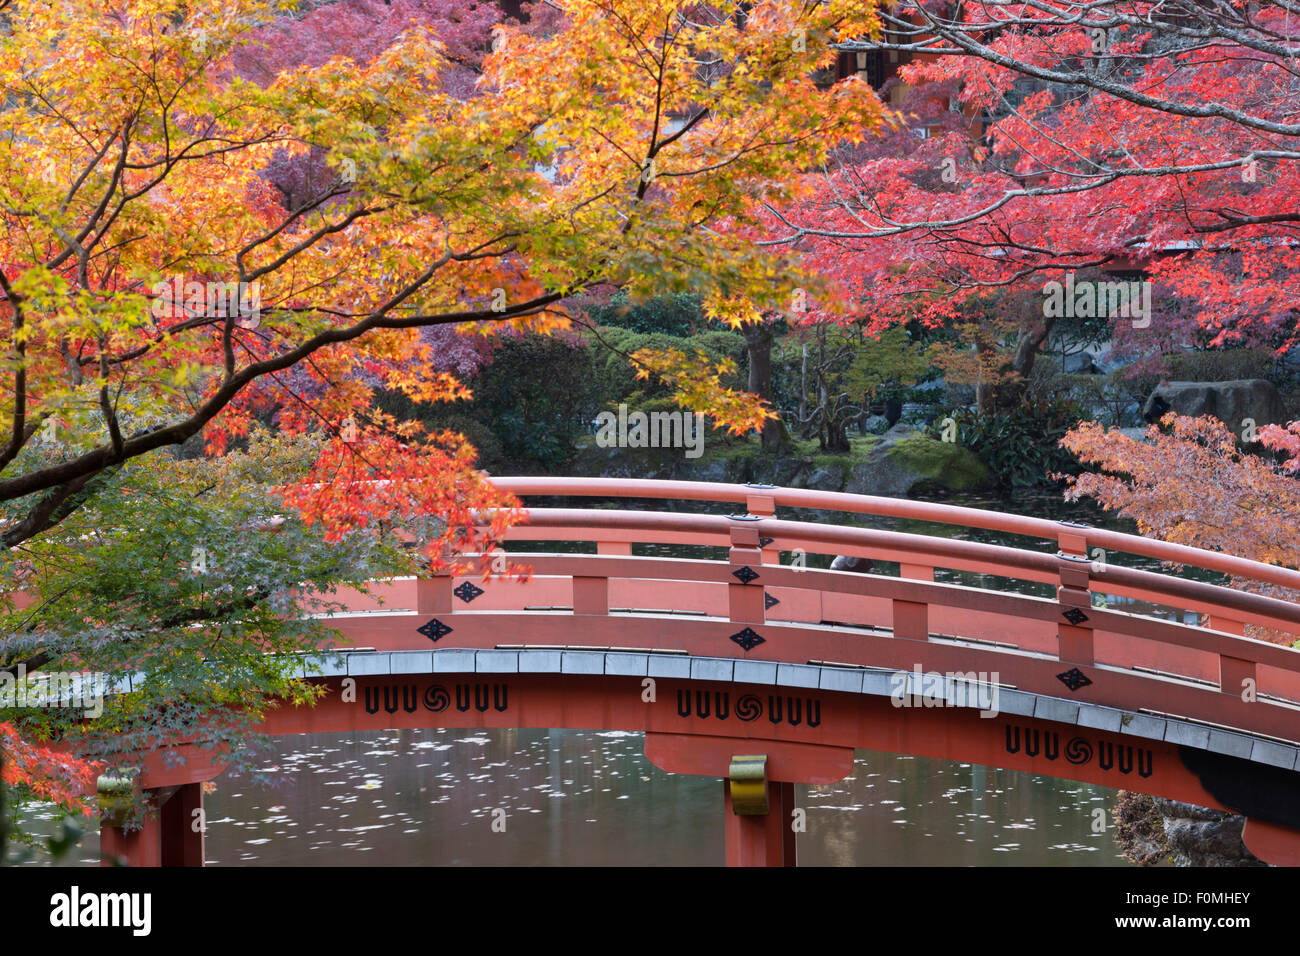 Fall Live Wallpaper For Phone Japanese Bridge And Temple Garden In Autumn Daigoji